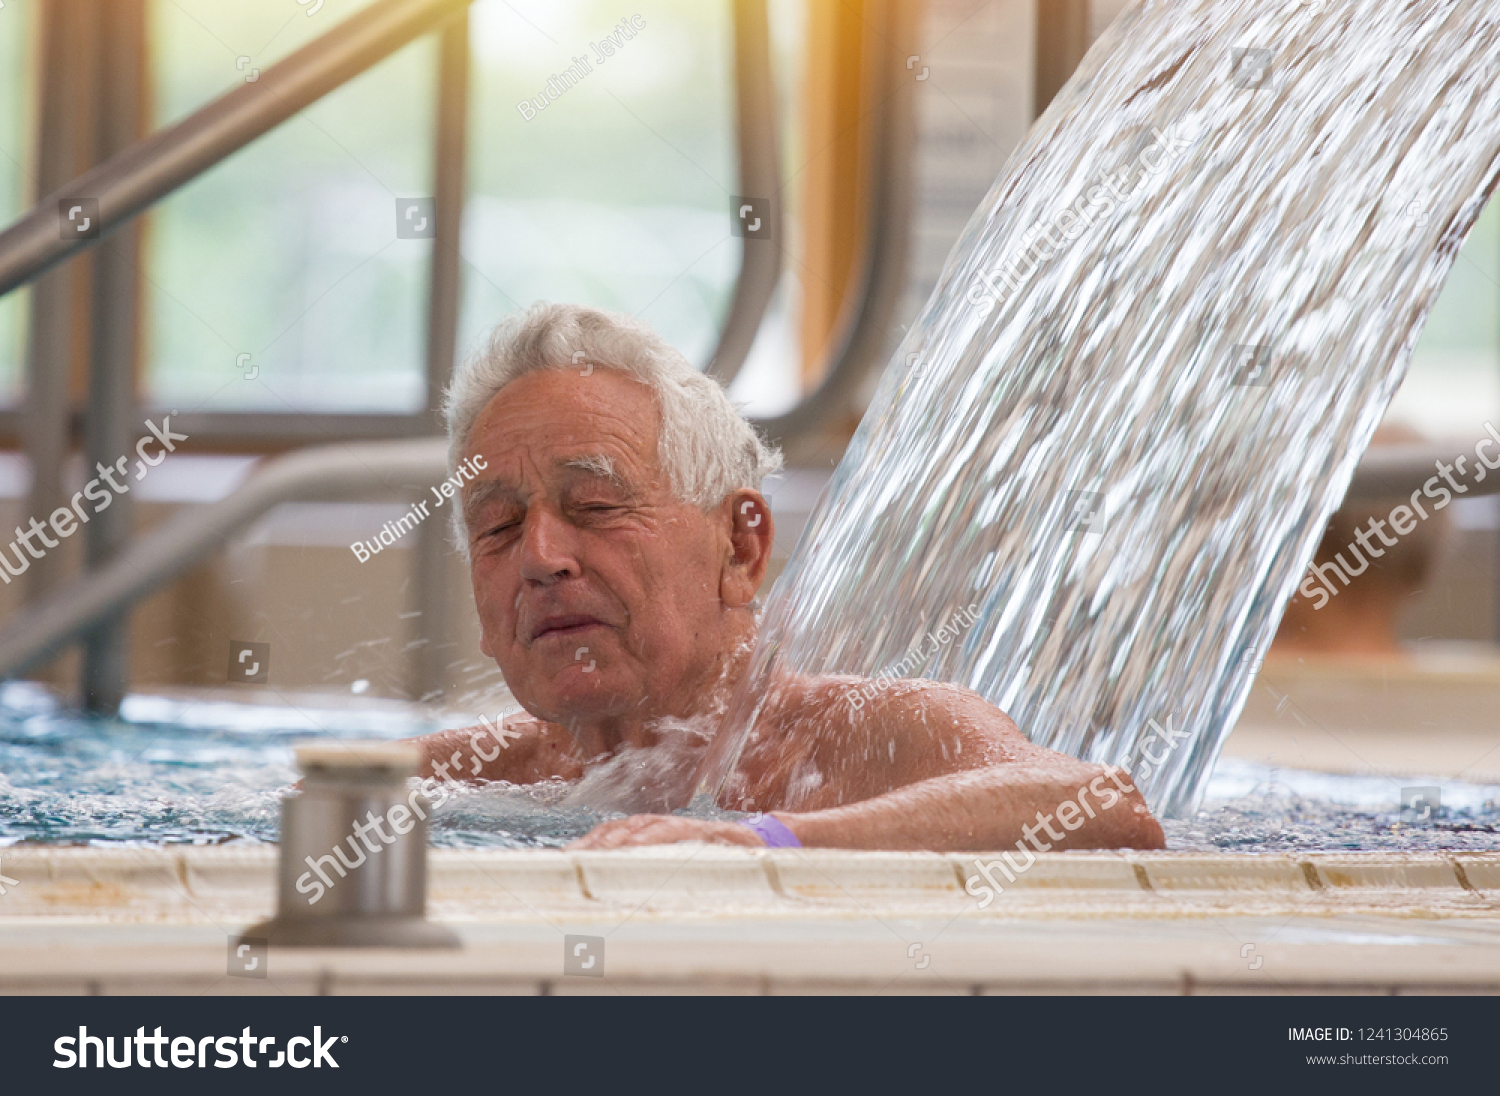 Image result for enjoying warm water bath